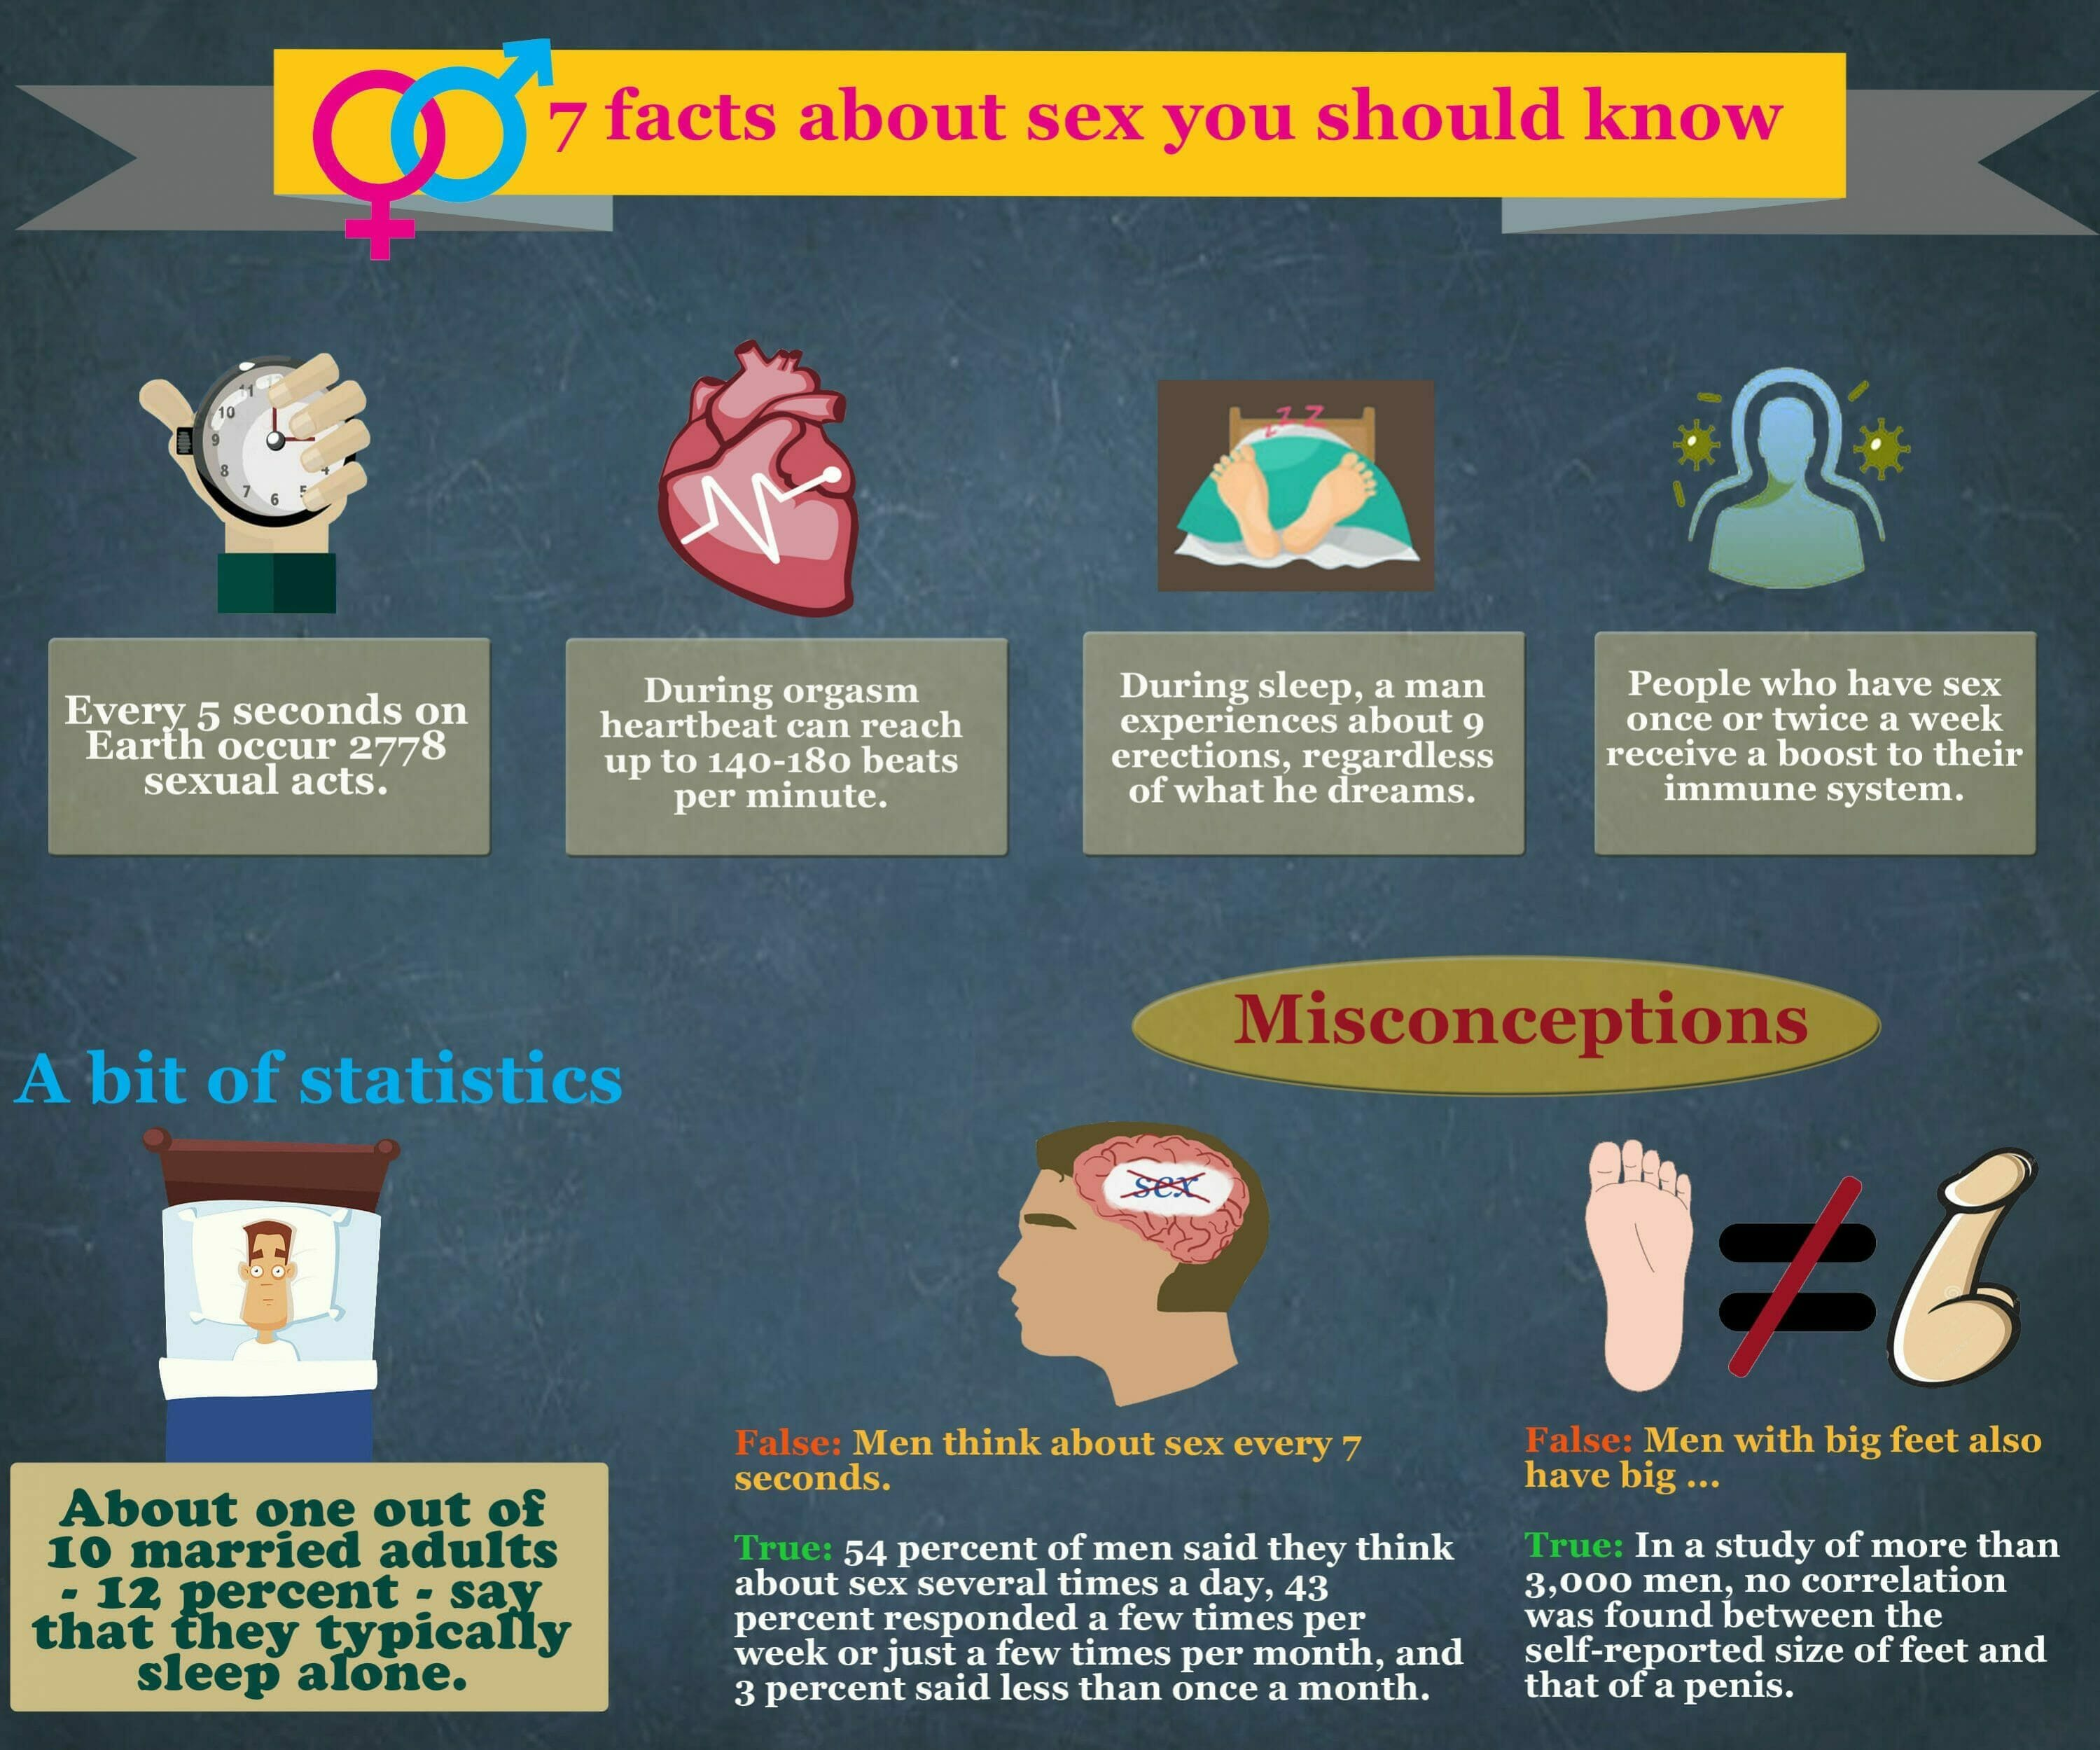 7 facts about sex infographic